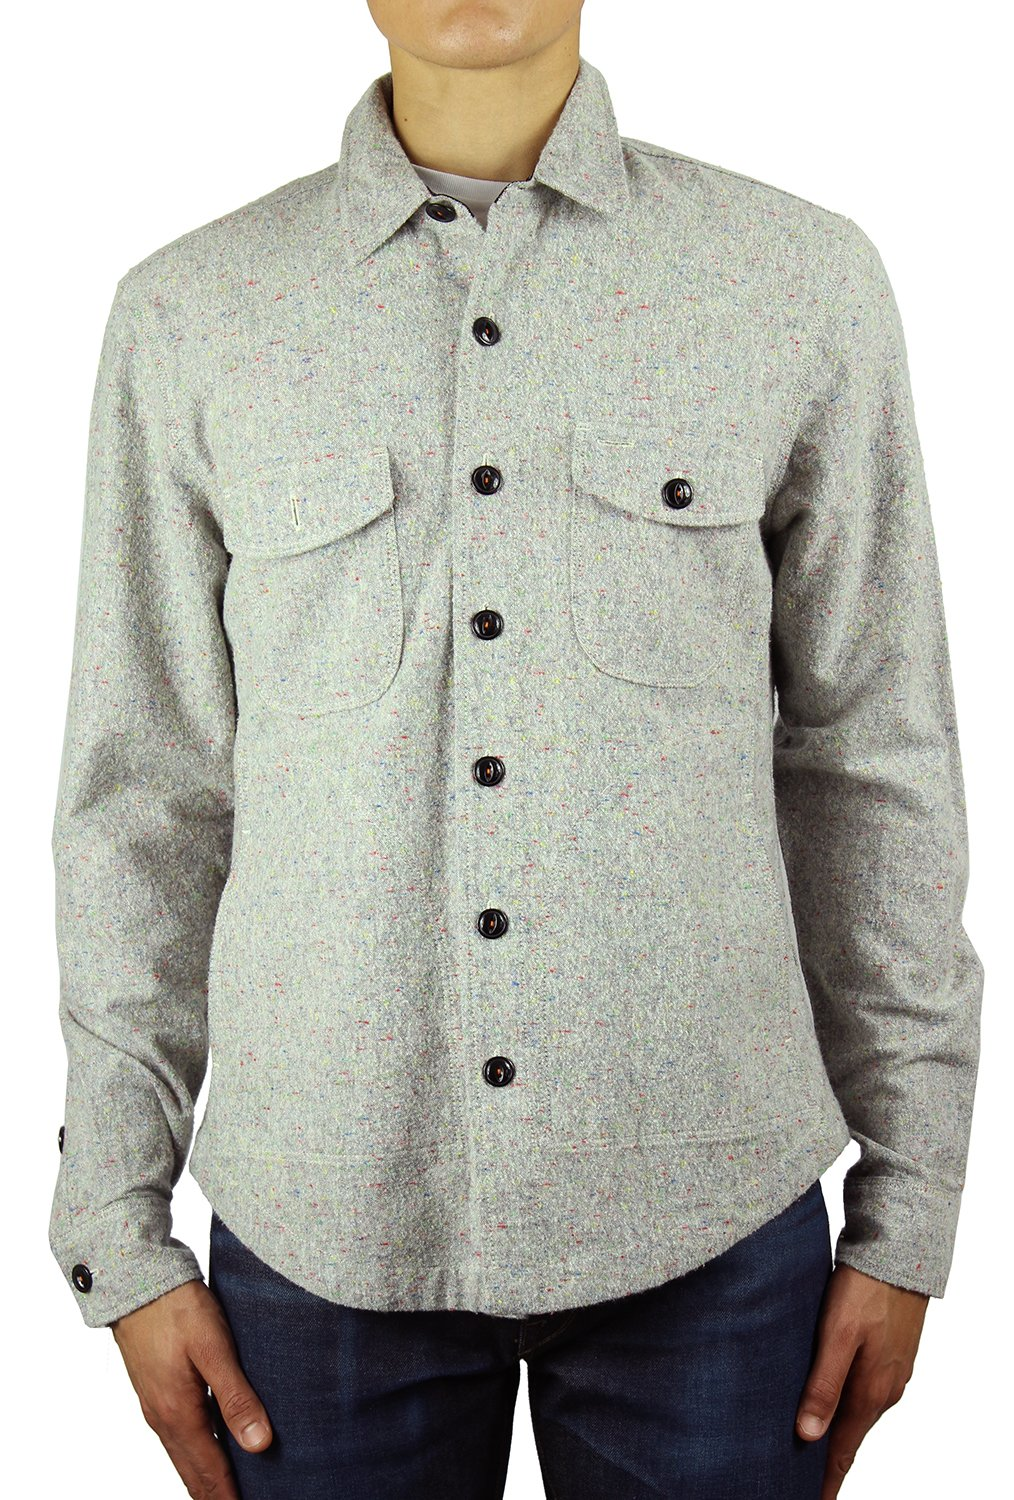 HIROSHI KATO Kato Shirts Jacket 100% Cotton Speckle Grey S